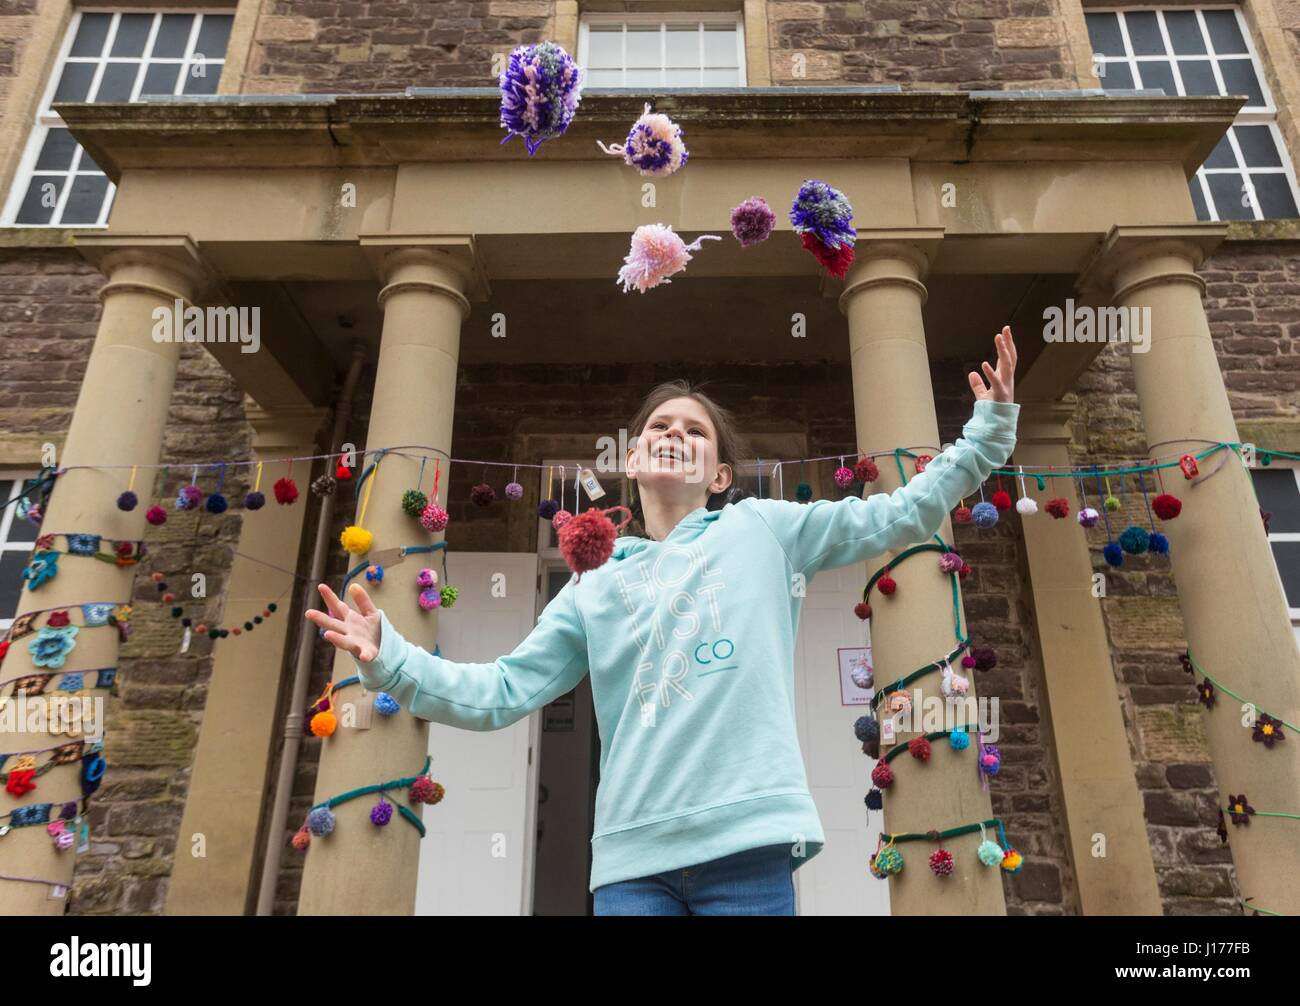 Lanarkshire, UK. 18th April, 2017.  during the Scotland-wide World Heritage Day festivities. Six unique events, - Stock Image